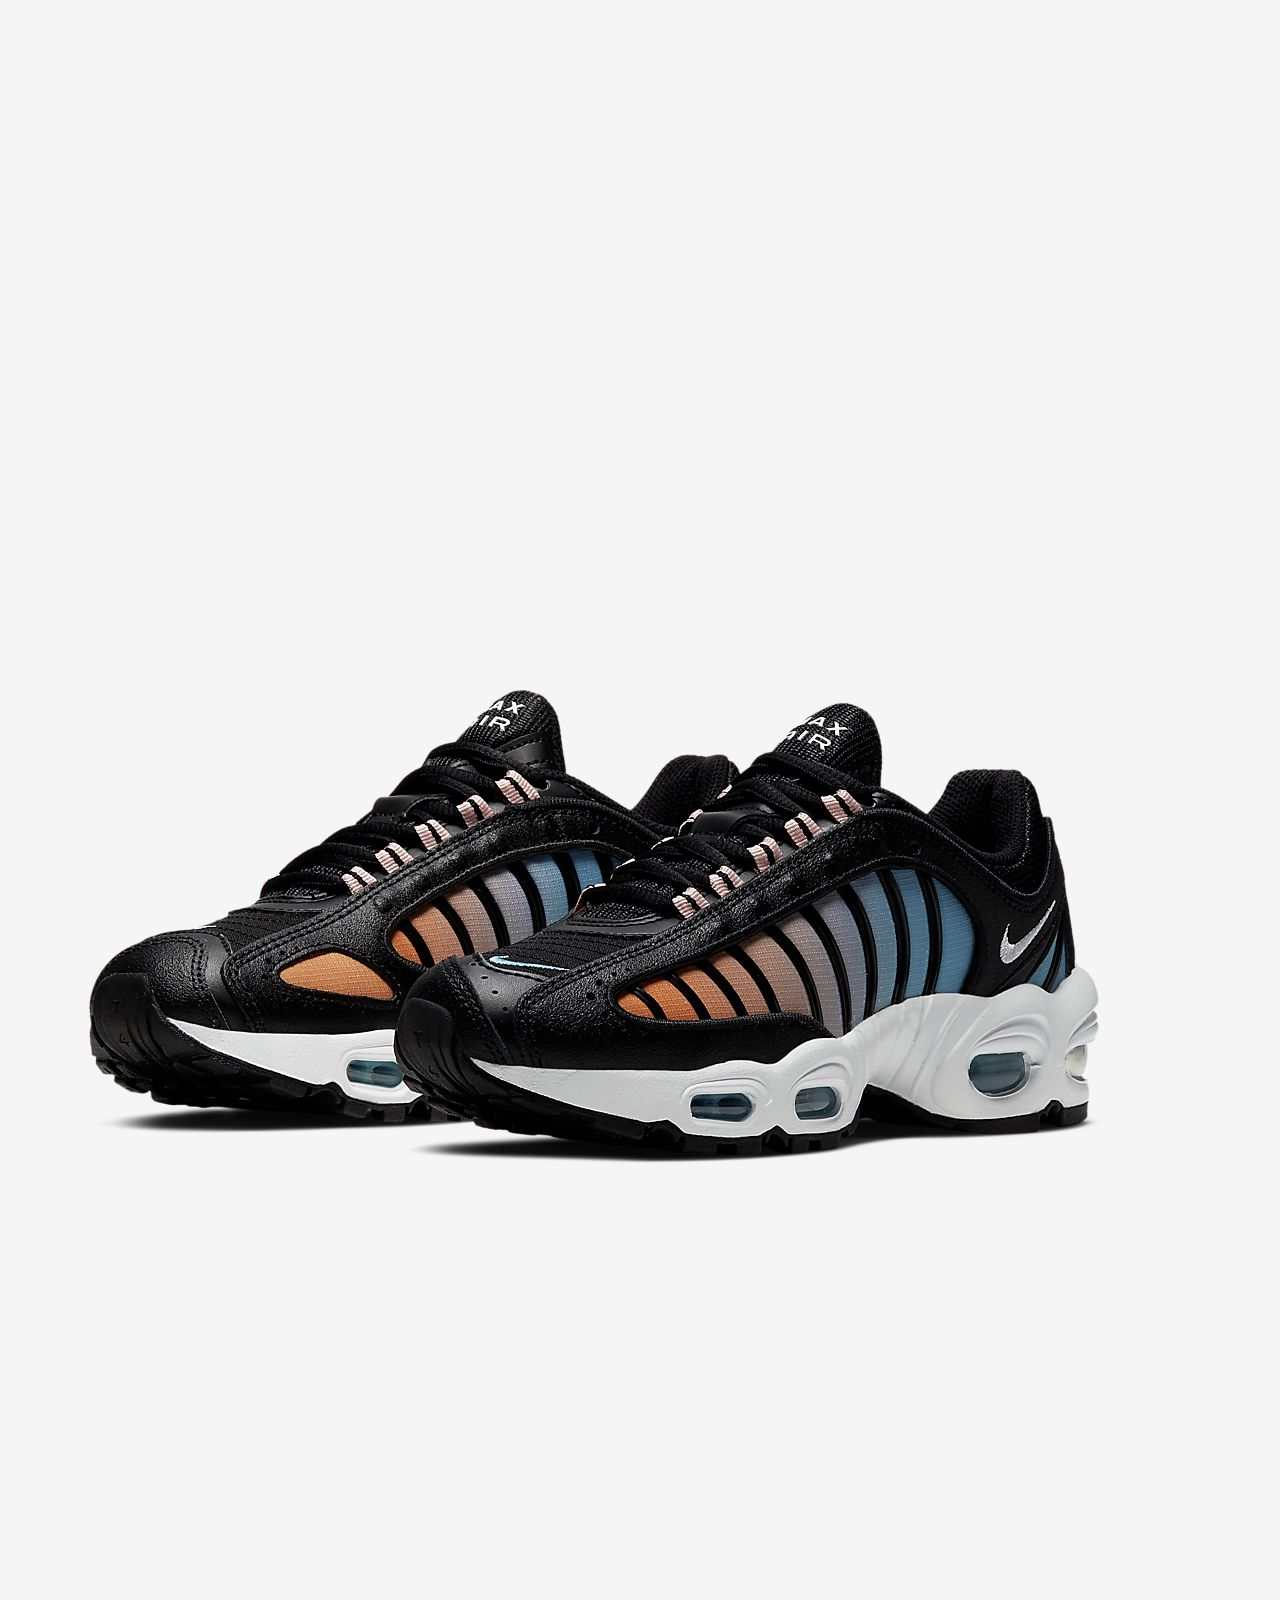 Nike Air Max Tailwind 4 Women's Shoe